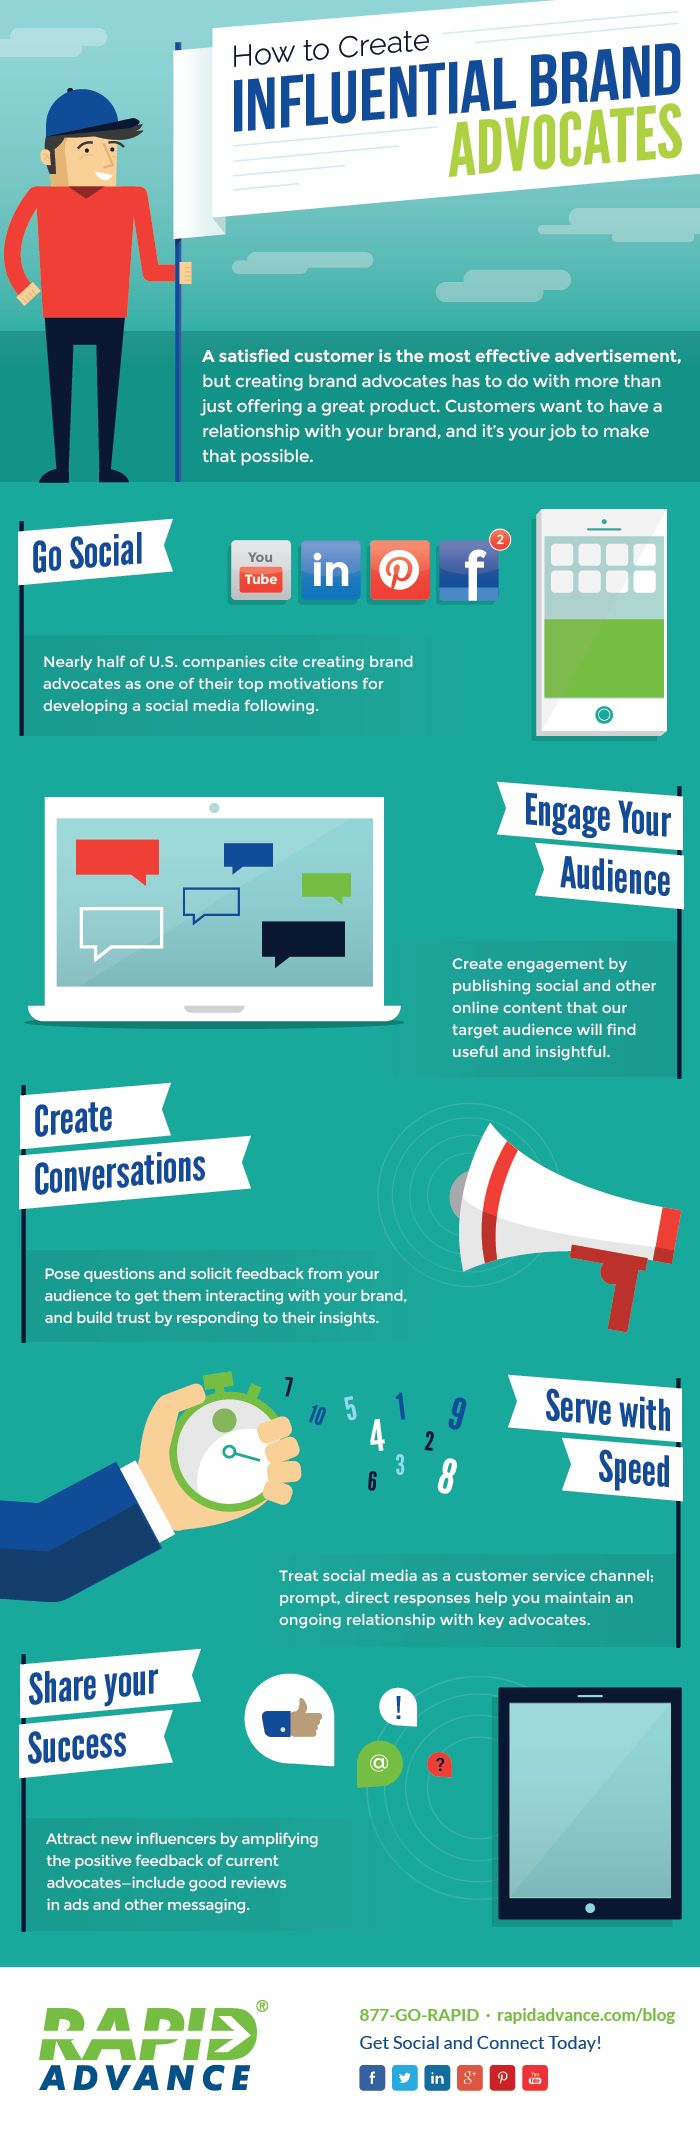 A satisfied customer is the most effective advertisement, but creating brand advocates has to do with more than just offering a great product. Customers want to have a relationship with your brand, and it's your job to make that possible. This infographic from RapidAdvance proposes 5 tips on how to create influential brand advocates.